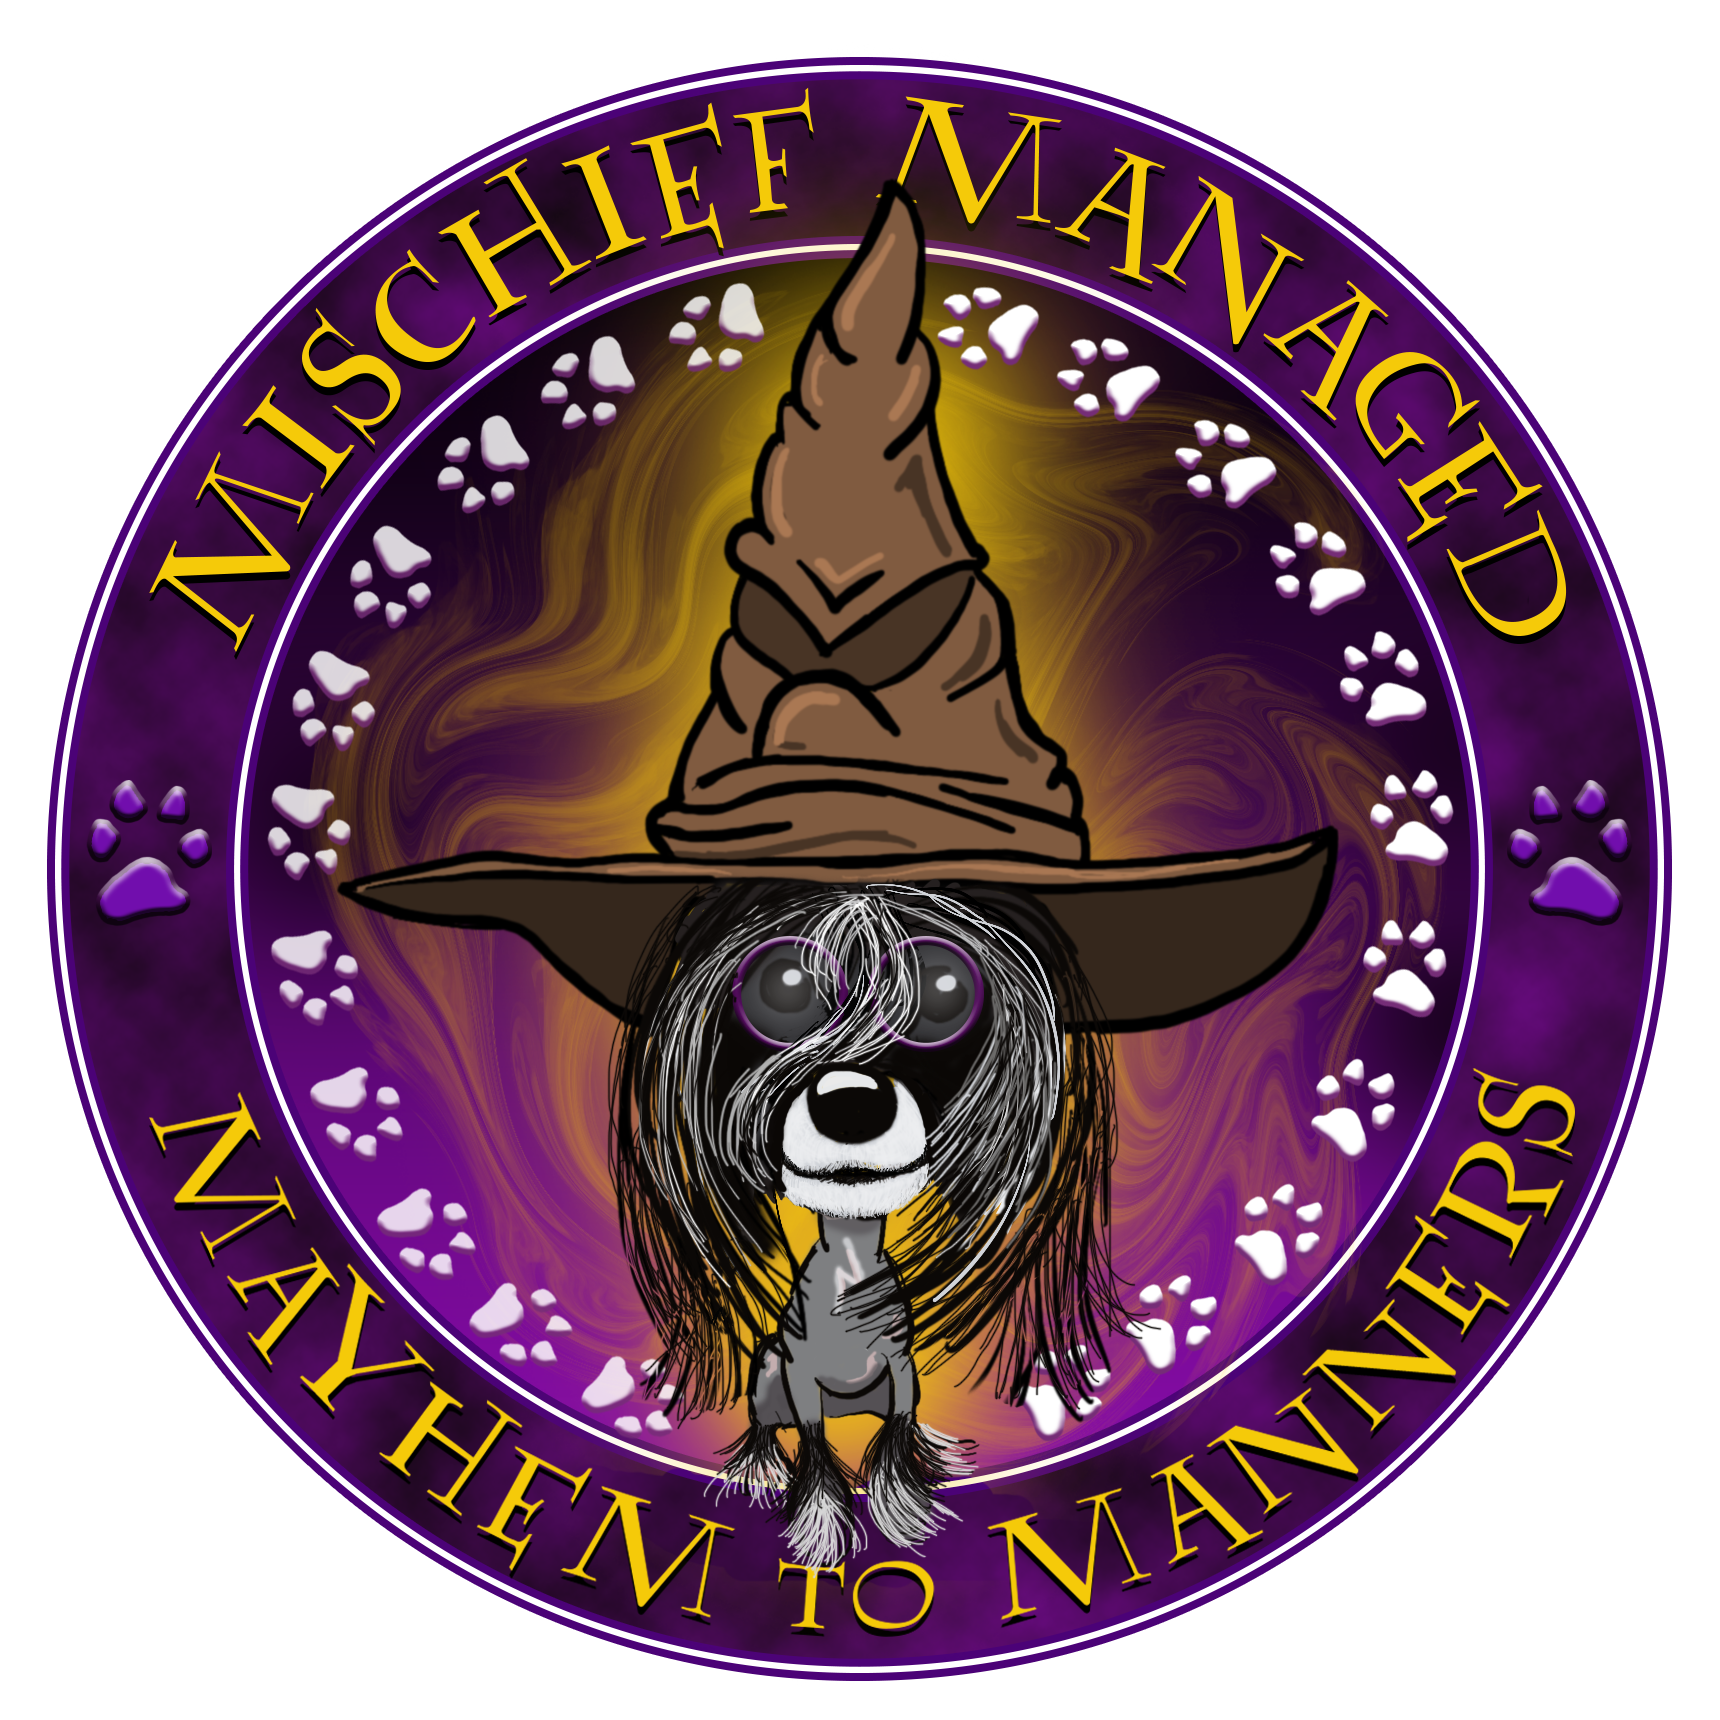 Mischief Managed Mayhem to Manners Logo PNG